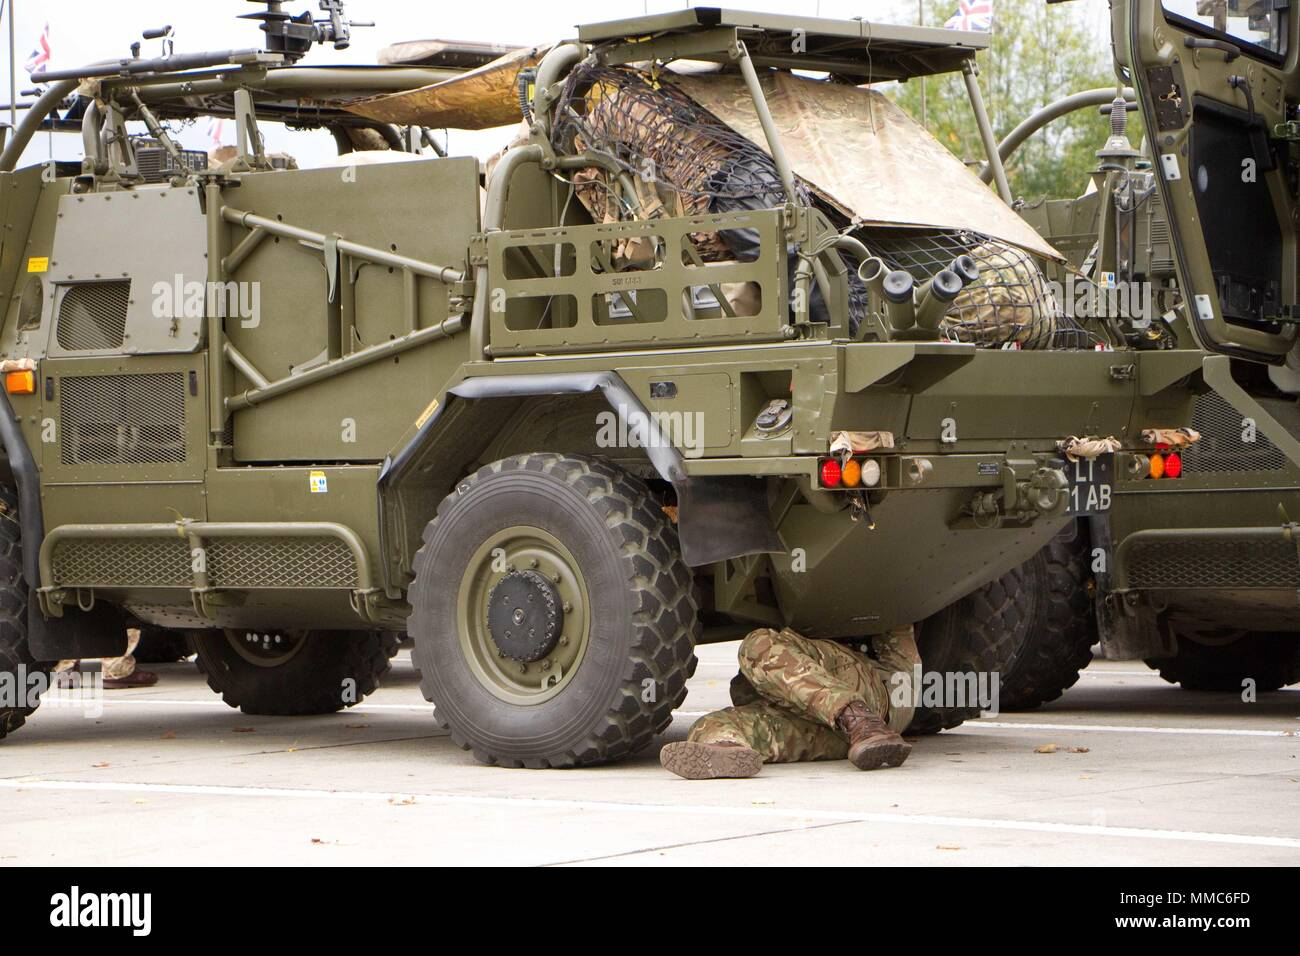 A Soldier Assigned To Balaklava Squadron Light Dragoons Regiment British Army Checks His Vehicle At A Rest Stop In Germany Oct 11 2017 During A 1 100 Km Road March From Rose Barracks